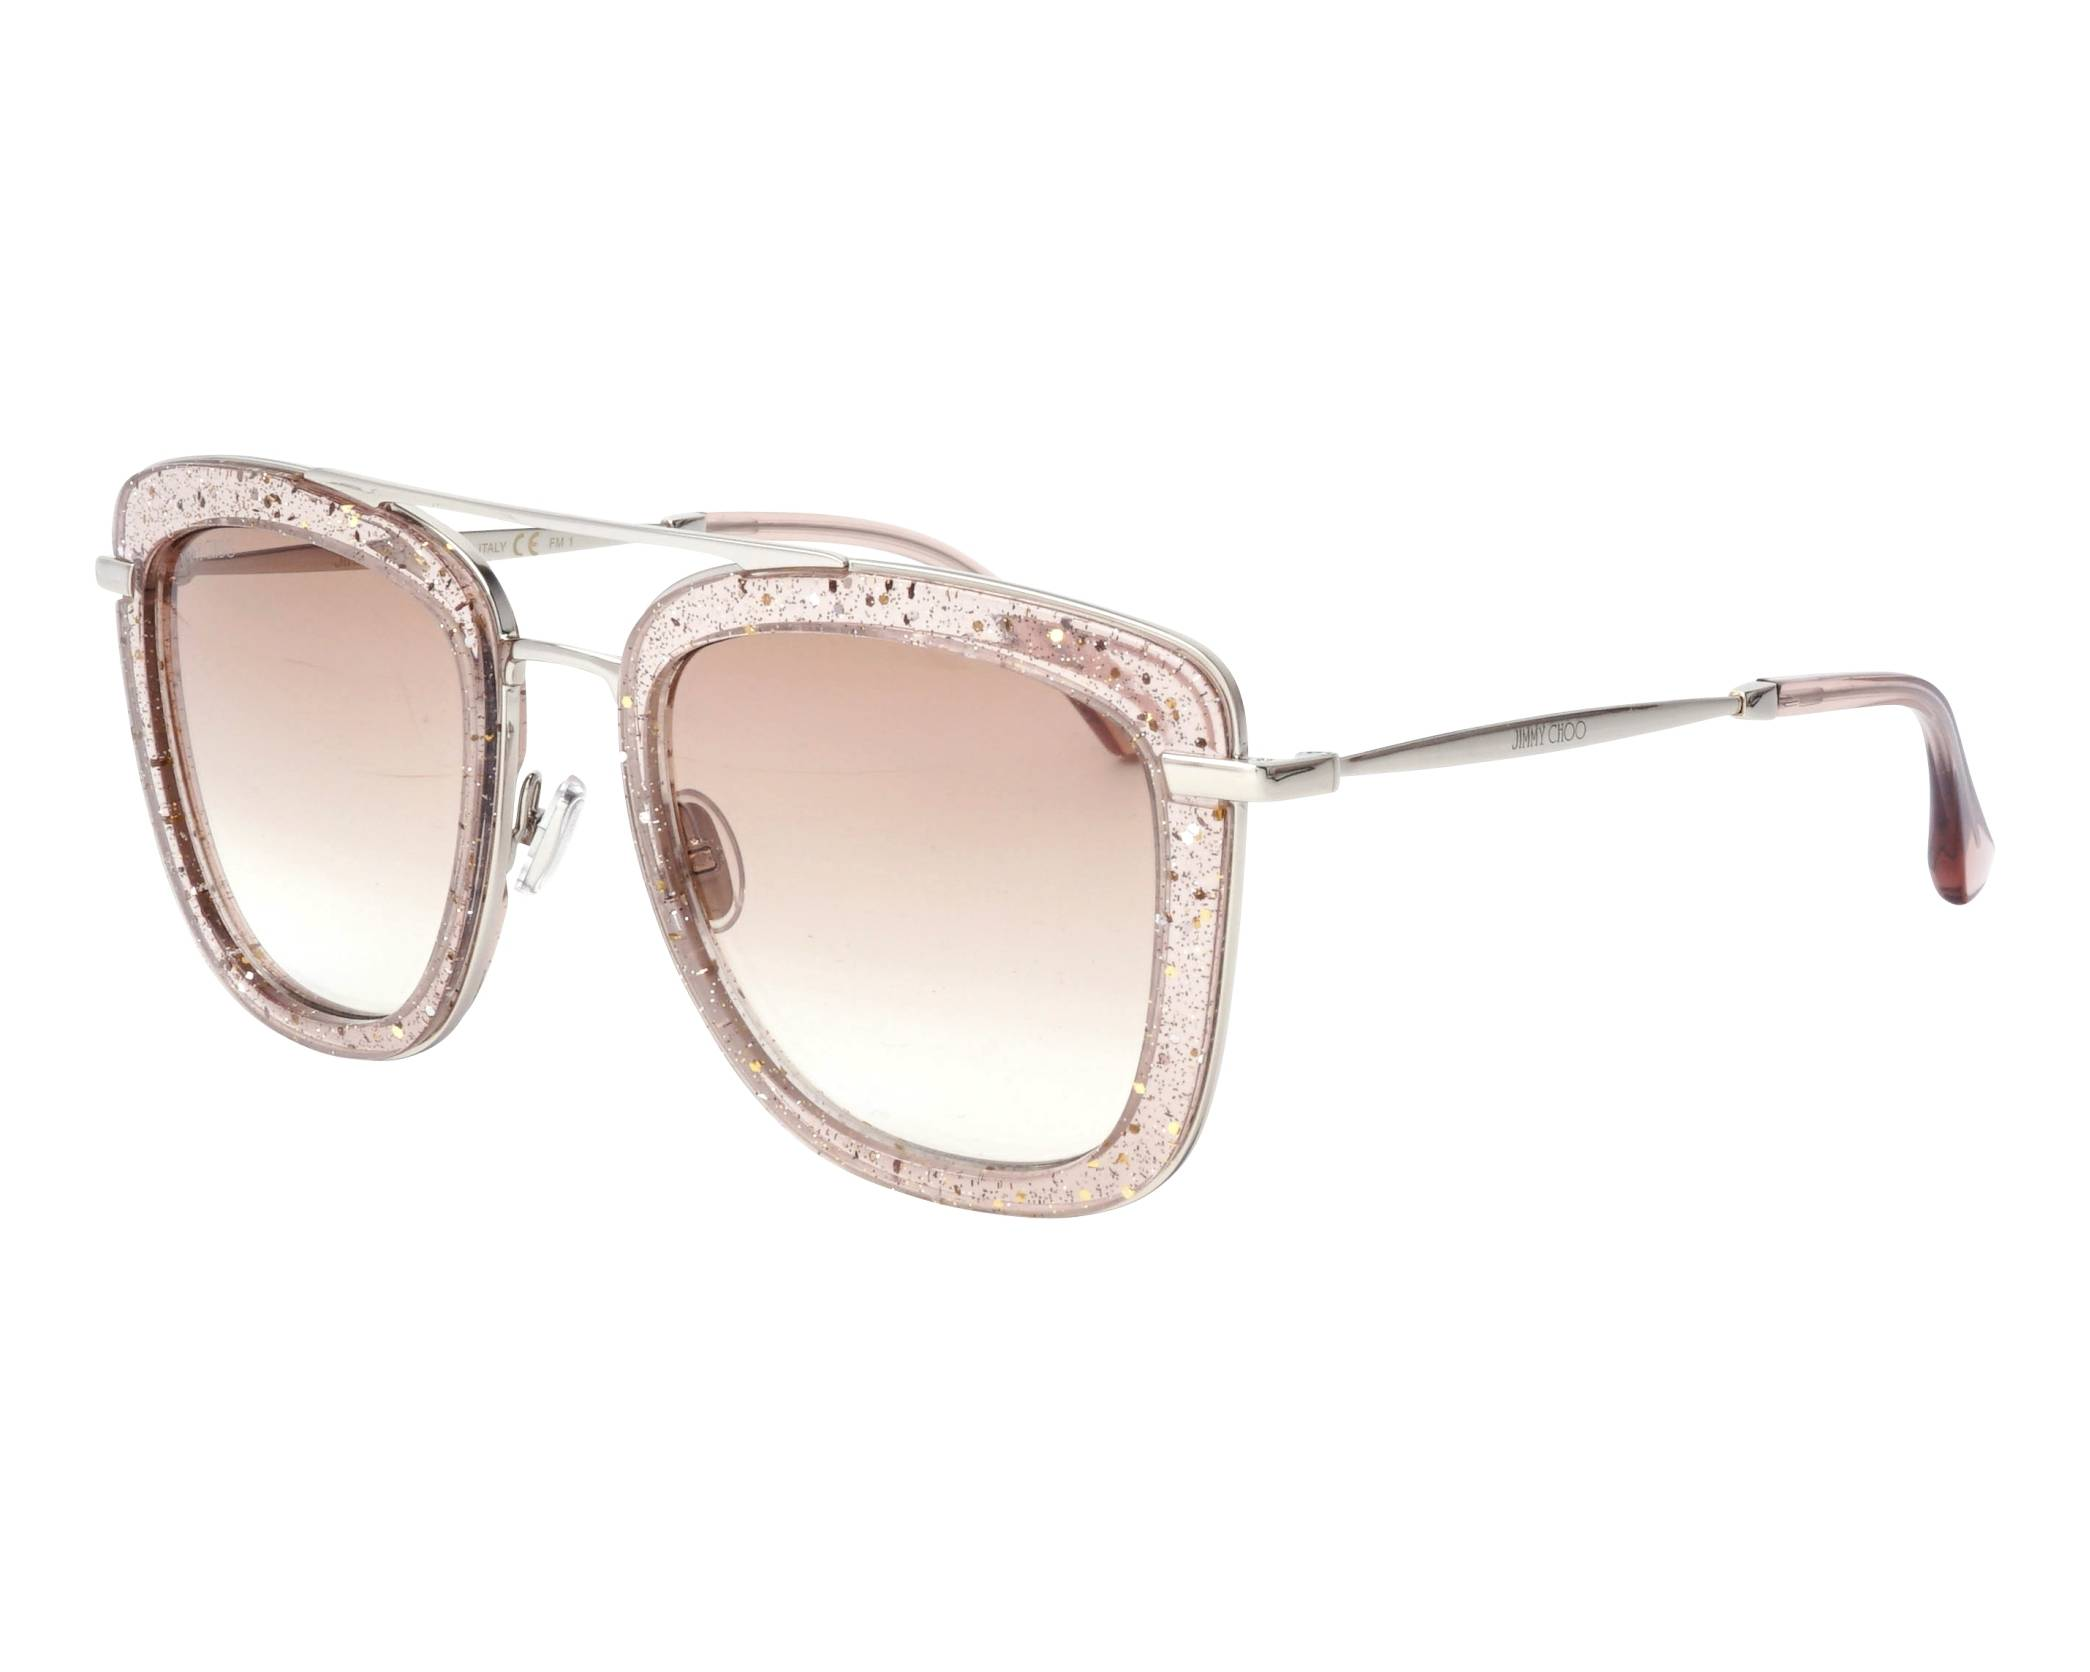 Jimmy Choo Glossy 53mm Square Sunglasses - Nude in Natural